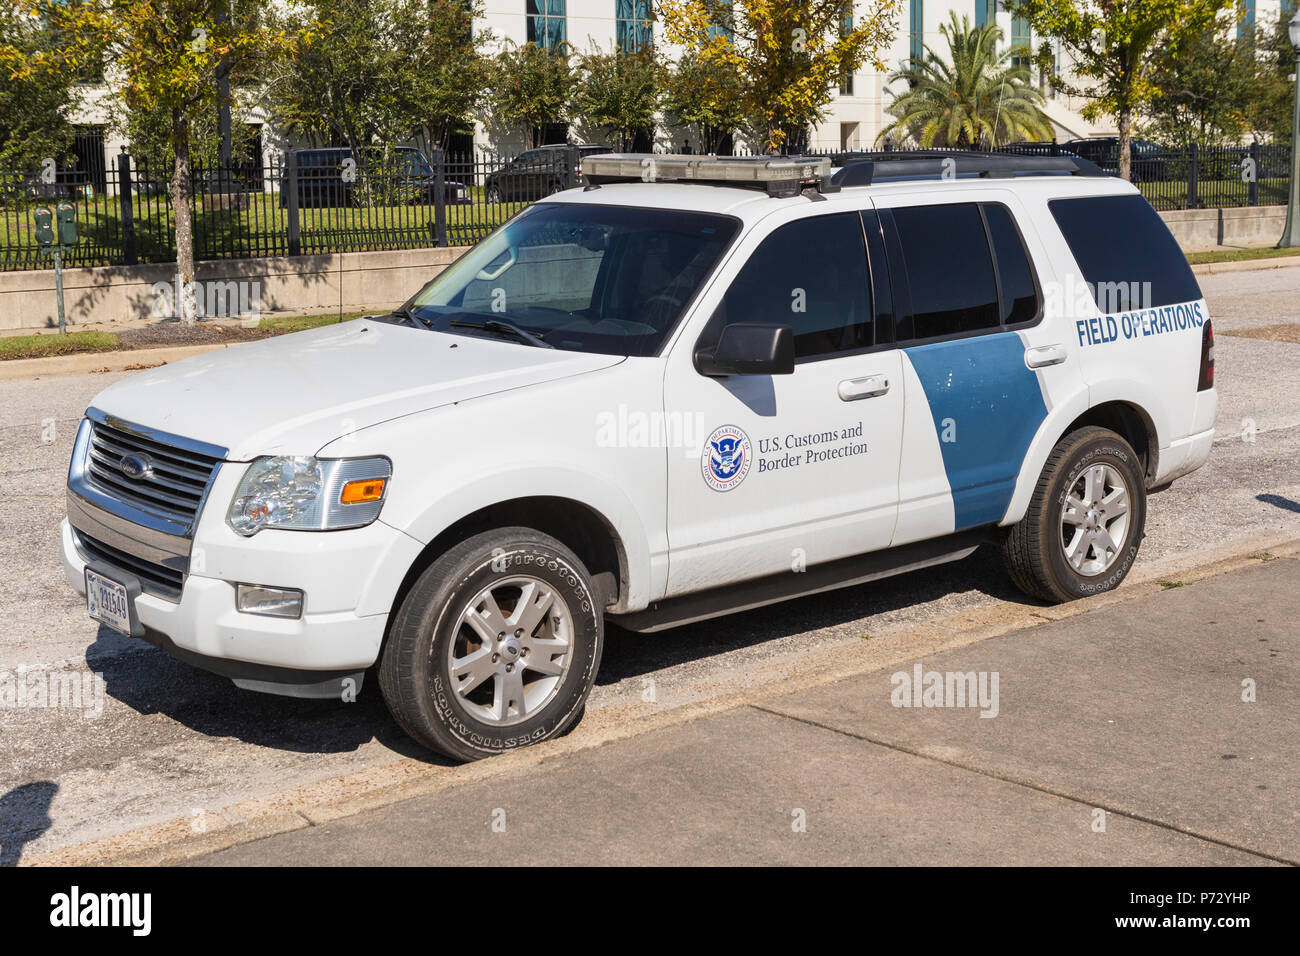 A U.S. Customs and Border Protection Field Operations vehicle parked in front of the Mobile Service Port office in Mobile, Alabama. - Stock Image